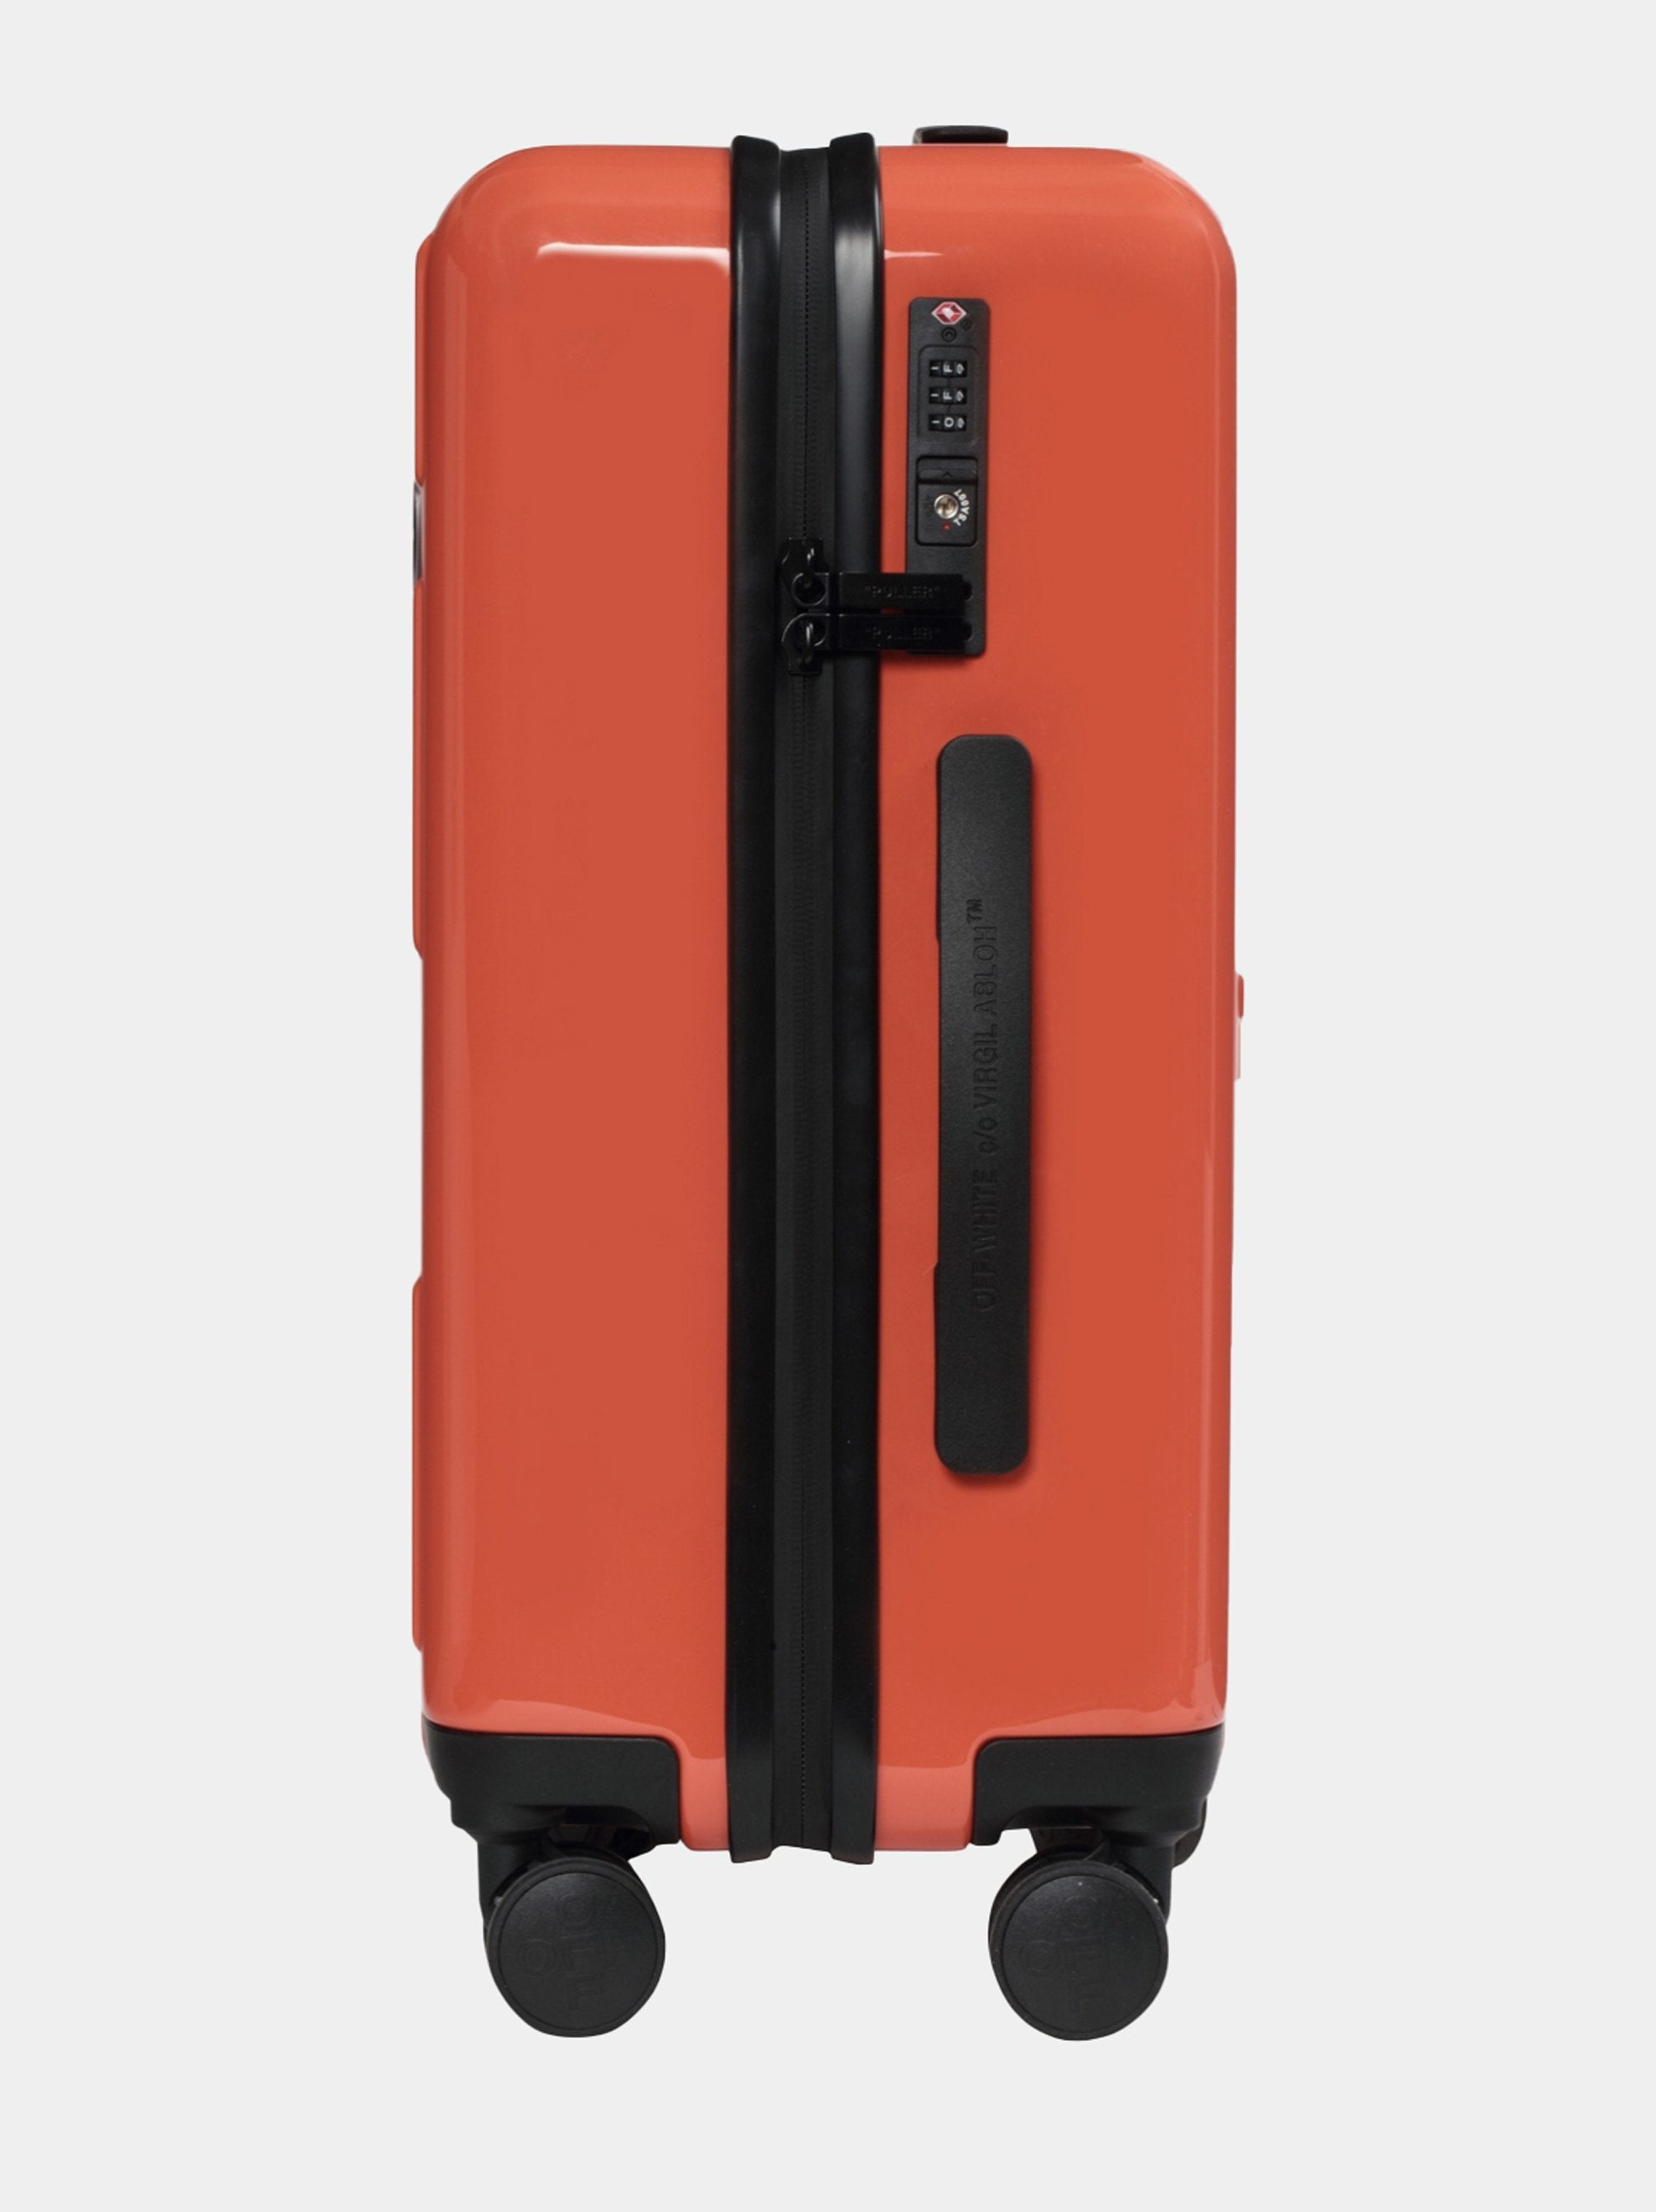 Red Arrow Trolley Luggage 2